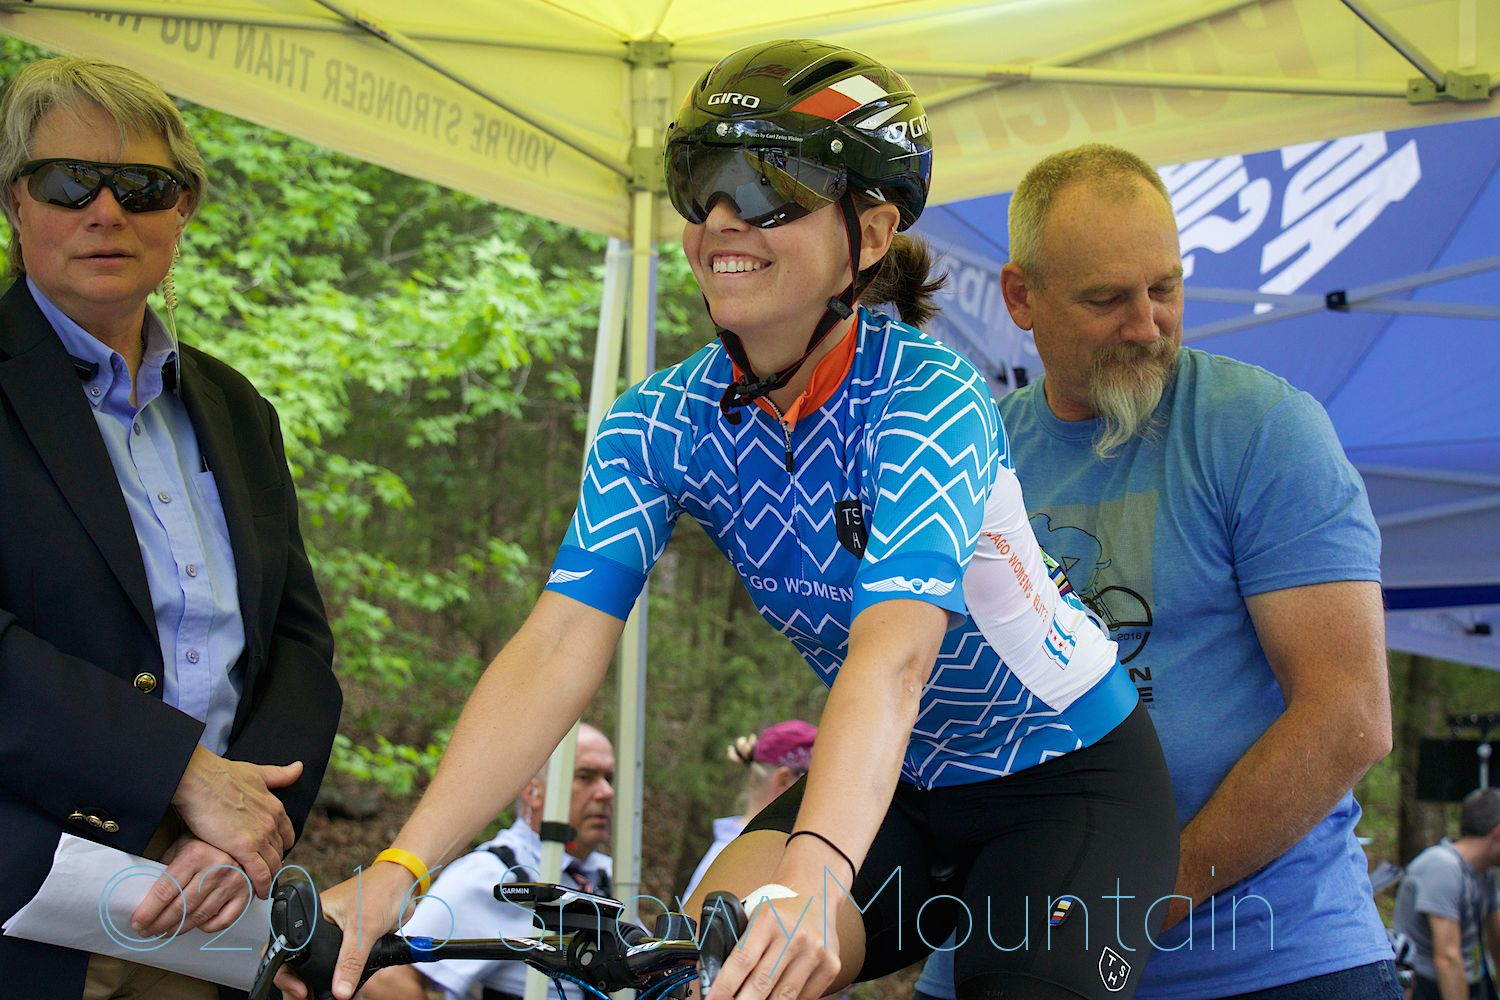 Nicole Mertz  shares a joke with the starting officials.Photo by SnowyMountain Photography.